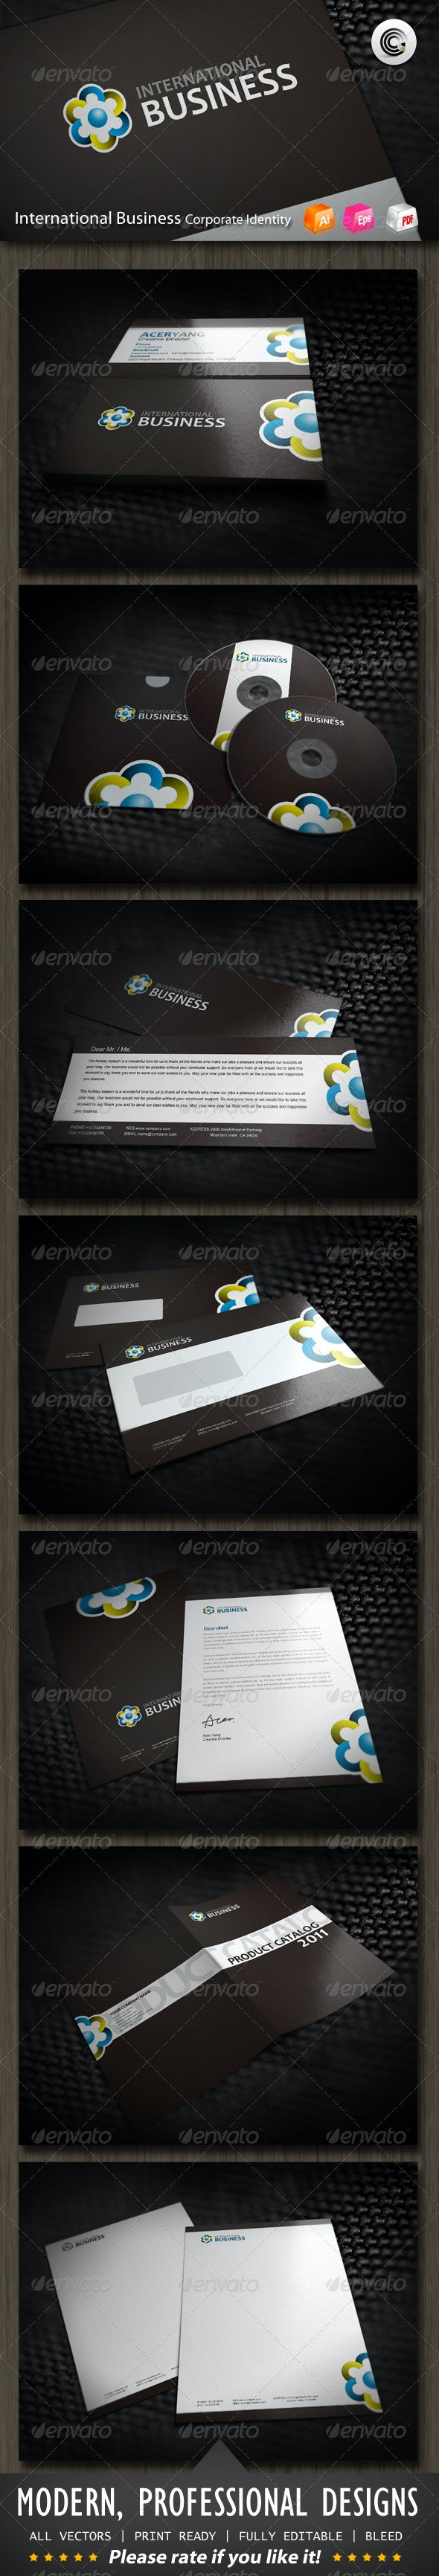 International Business Corporate Identity - Stationery Print Templates